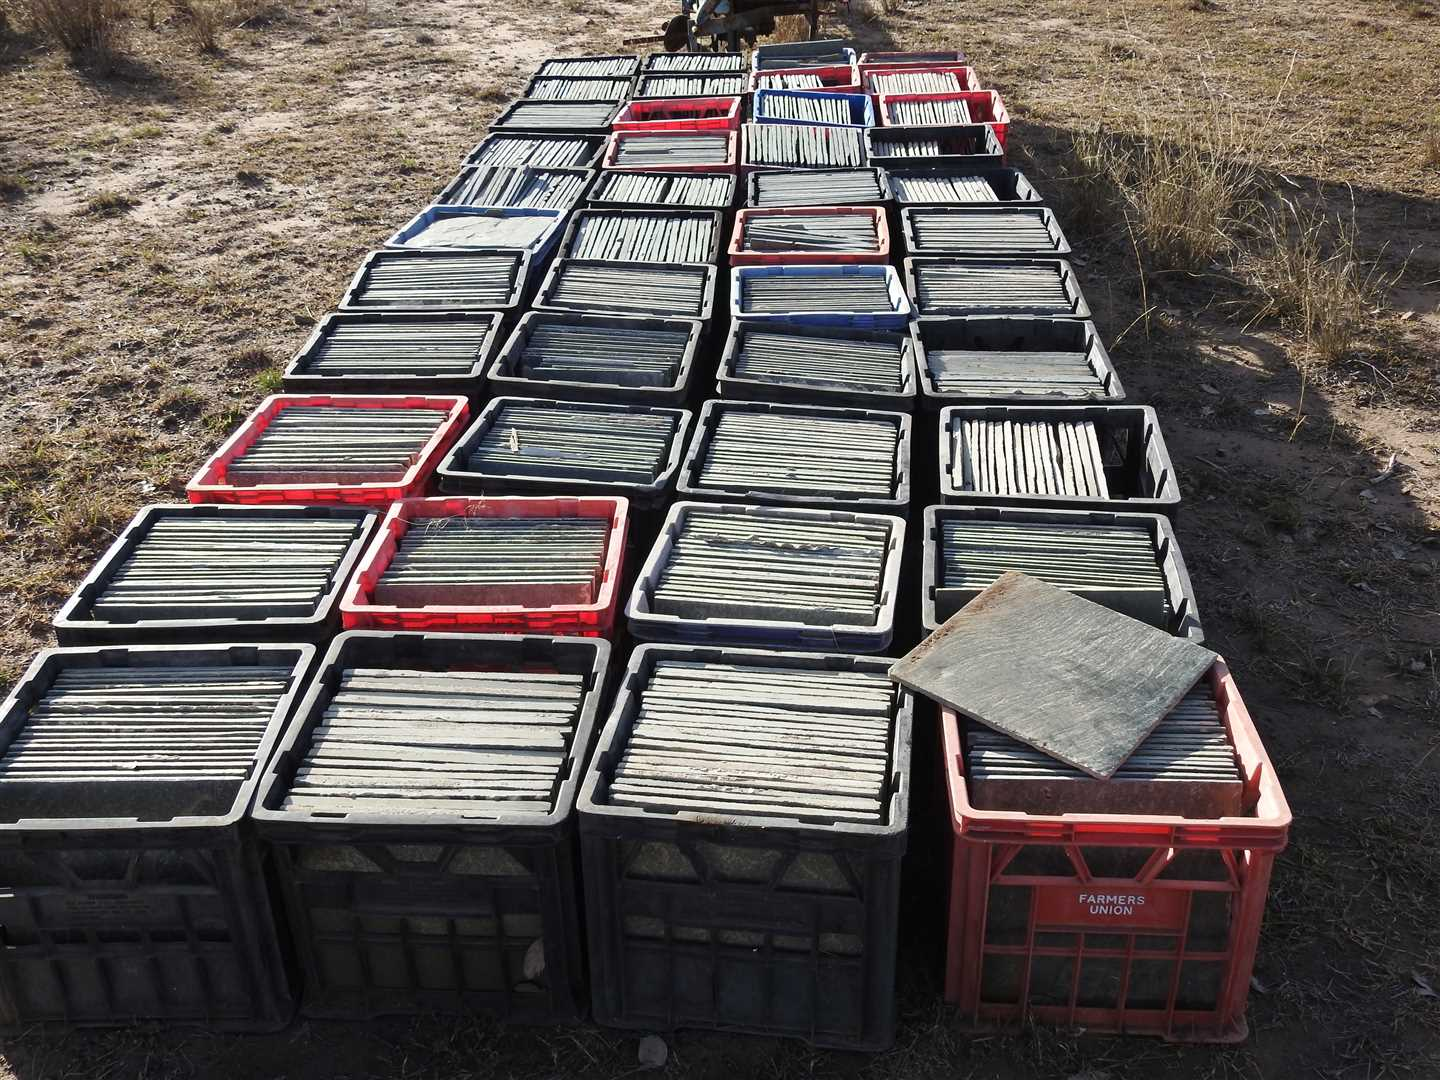 44 milk crates of slate tiles-300 x 300 all similar colour - grey/green. Ideal patio tiles . .  Approx 15- 20 in each box.